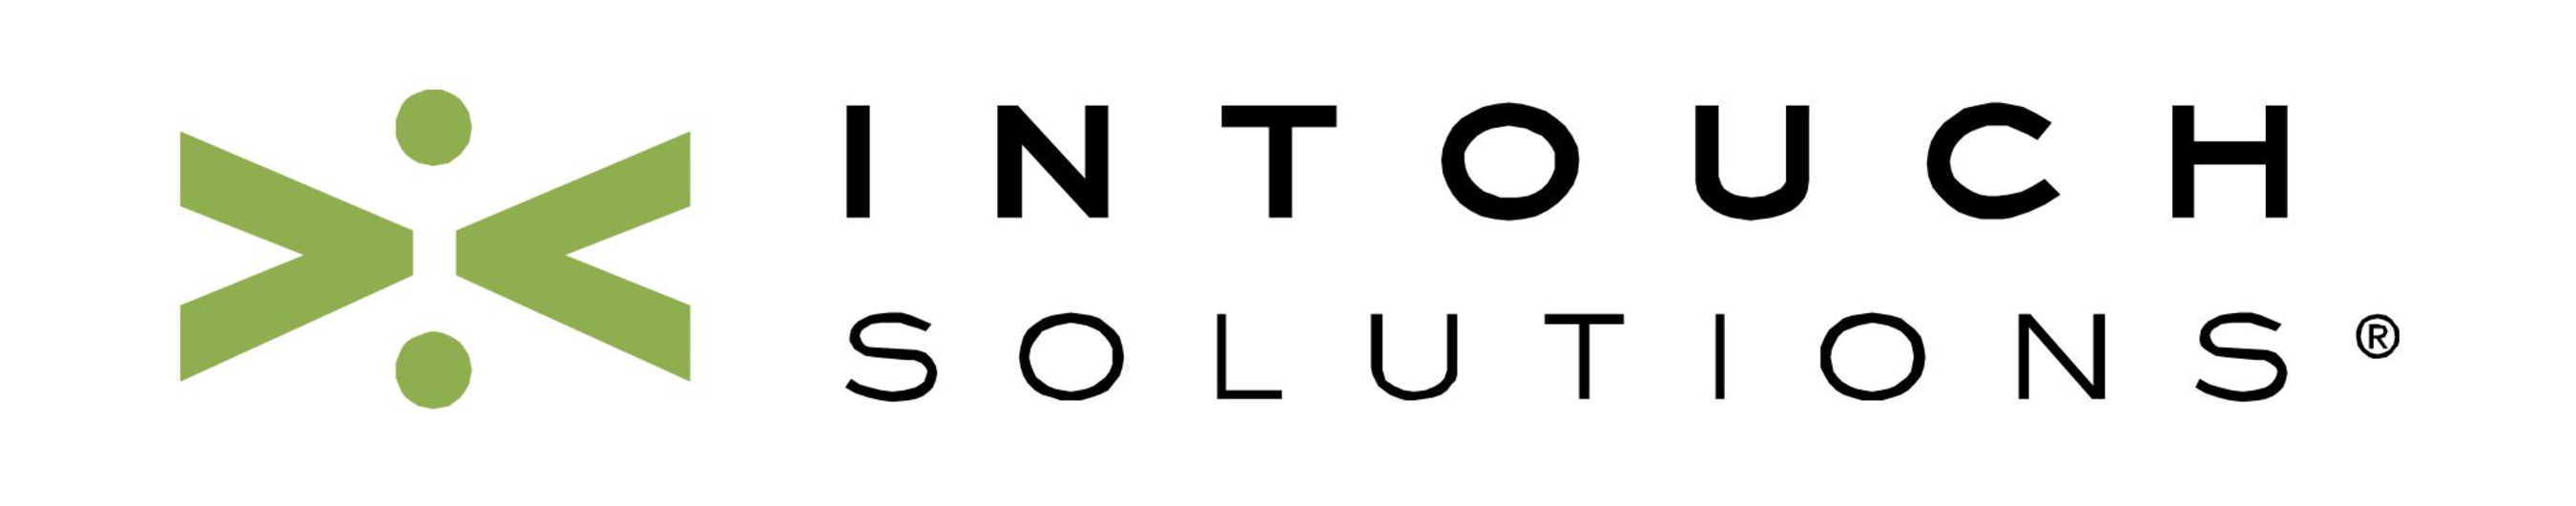 Intouch Solutions logo.